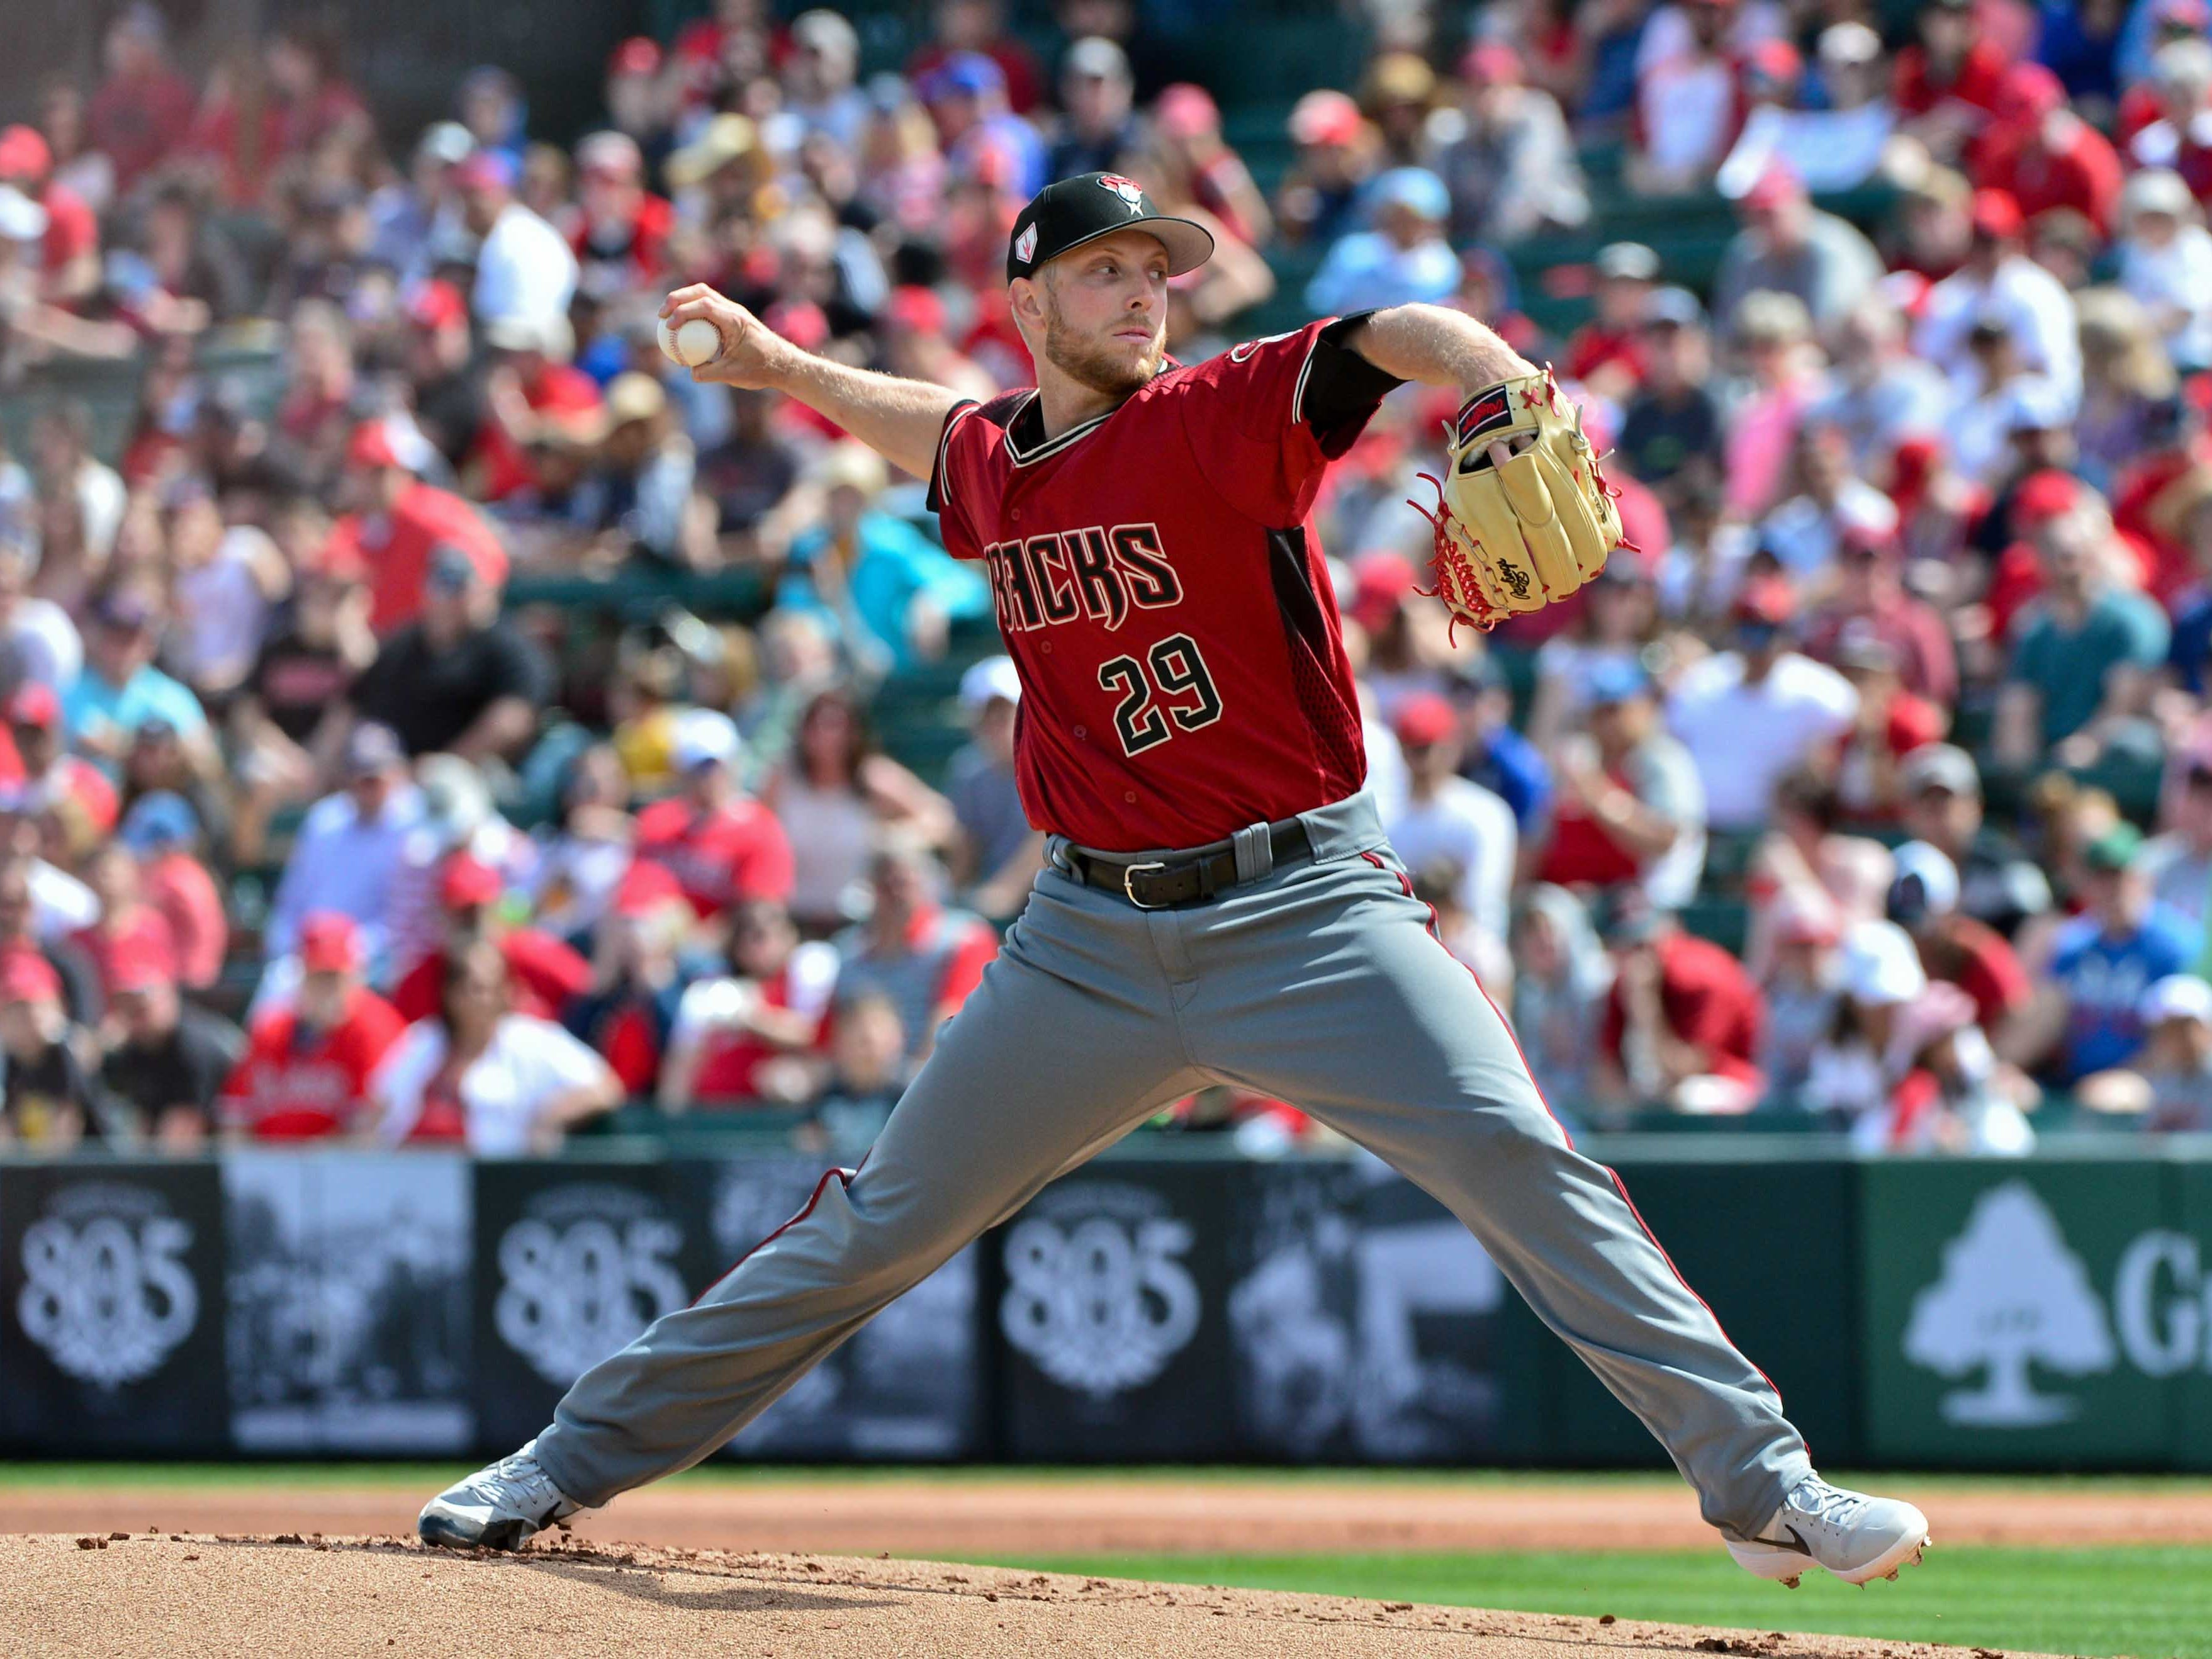 Mar 15, 2019; Tempe, AZ, USA; Arizona Diamondbacks starting pitcher Merrill Kelly (29) throws during the first inning against the Los Angeles Angels at Tempe Diablo Stadium. Mandatory Credit: Matt Kartozian-USA TODAY Sports